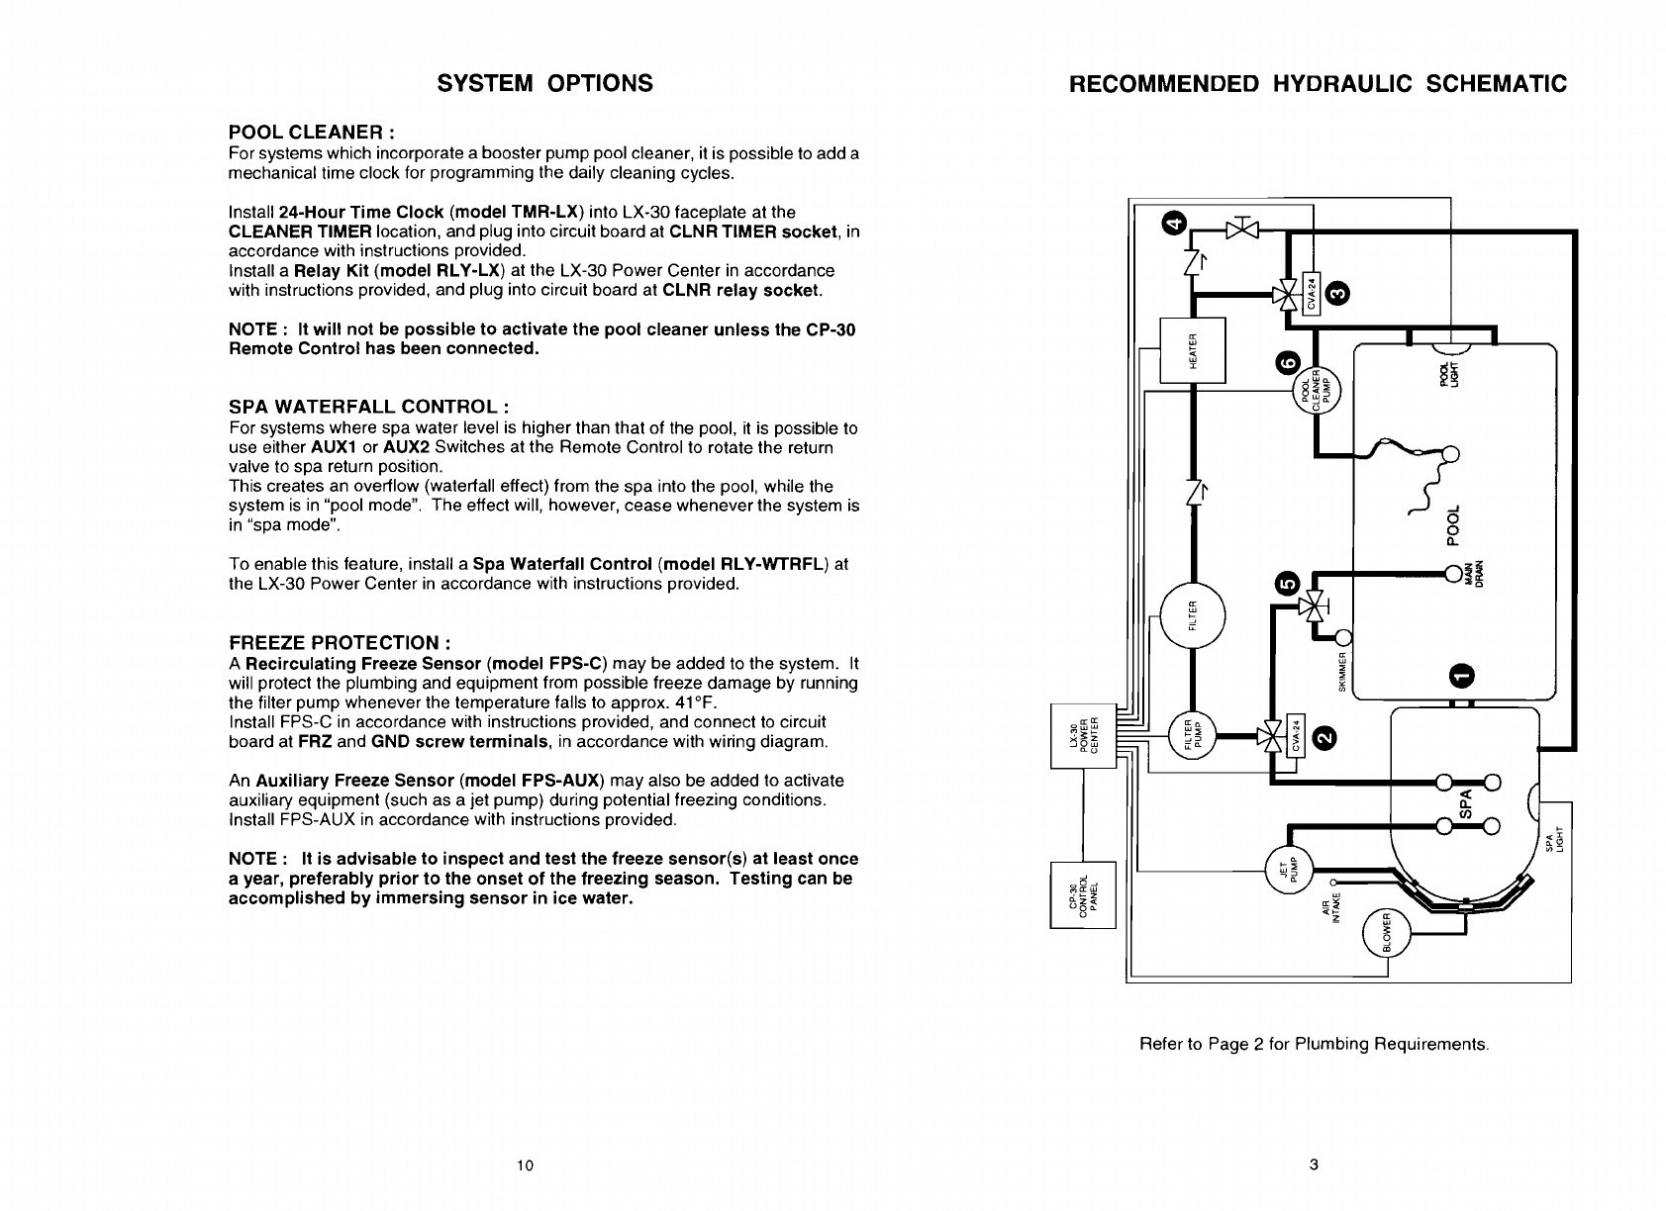 220V Pool Pump Wiring Diagram – Wiring Diagram Pool Pump Motor Best - Pool Pump Wiring Diagram